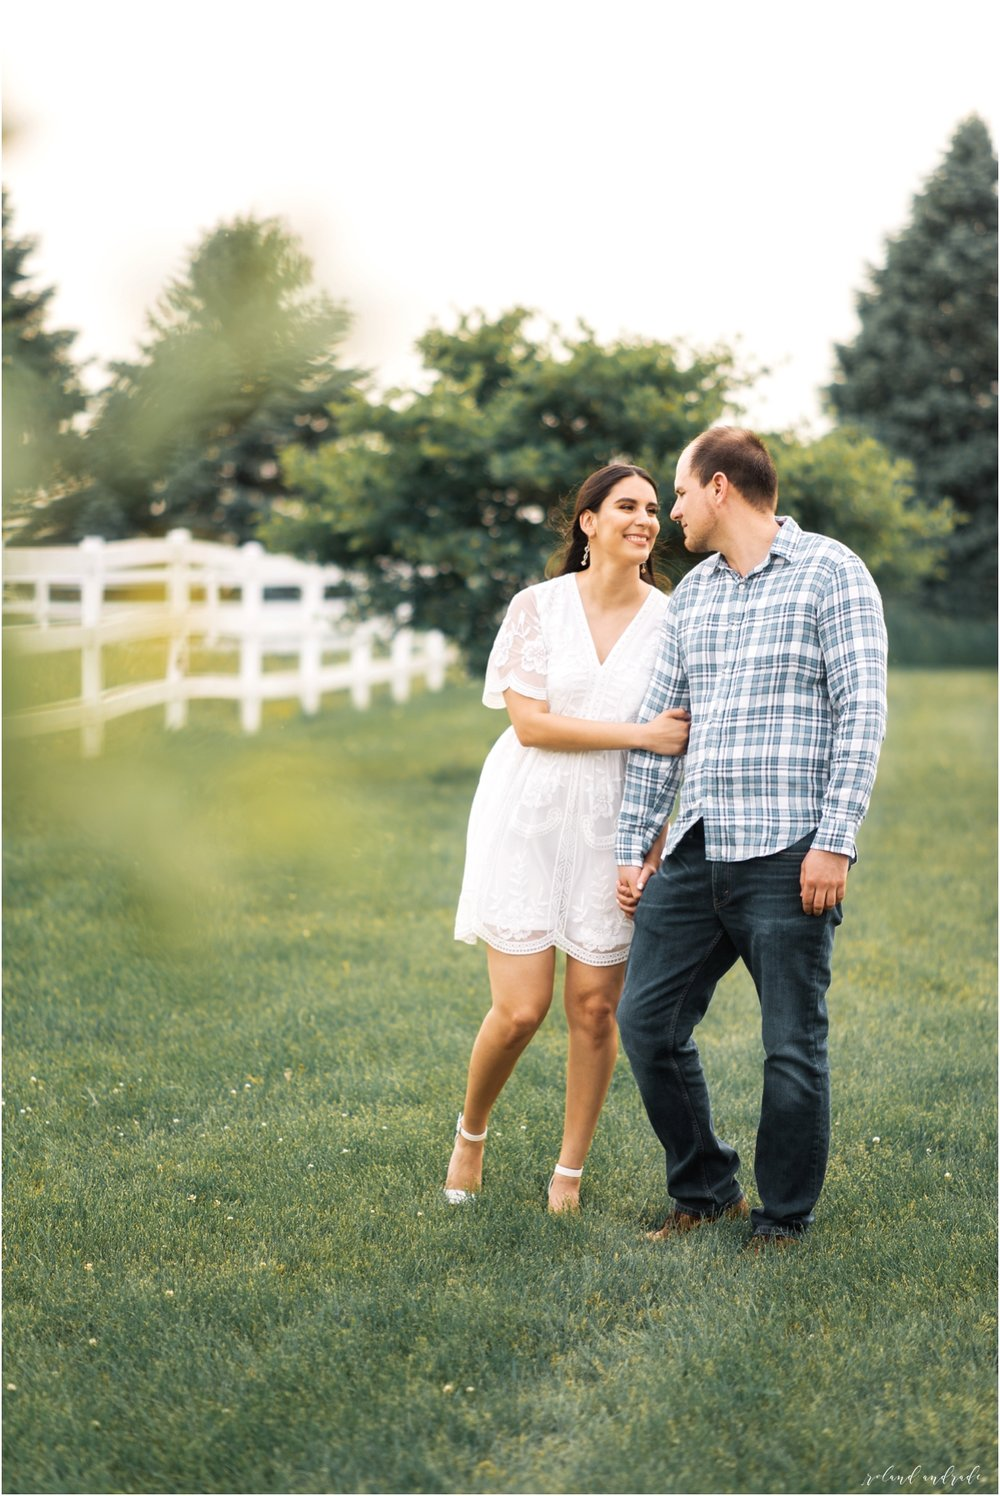 Yesenia + Daniel Northfork Farm Engagement Session Oswego Wedding Photographer Aurora Wedding Photographer8.jpg